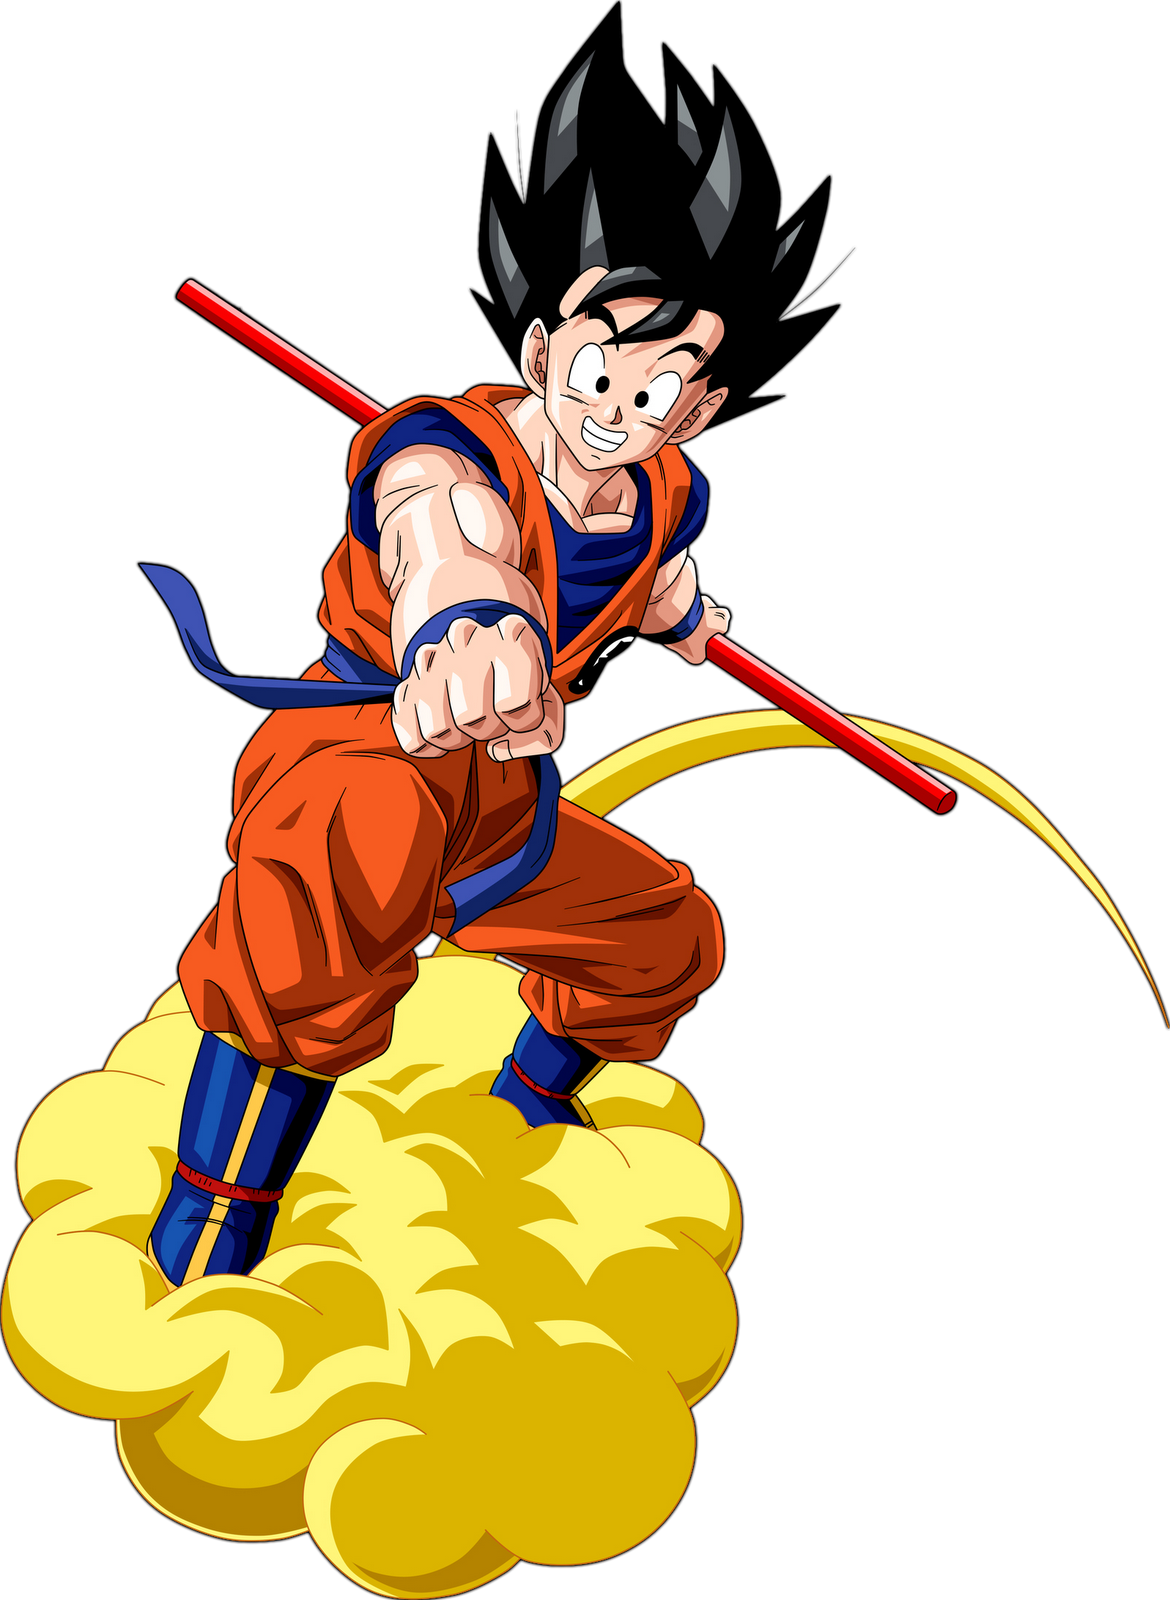 Goku, showcasing both pure-heartedness and fierceness.